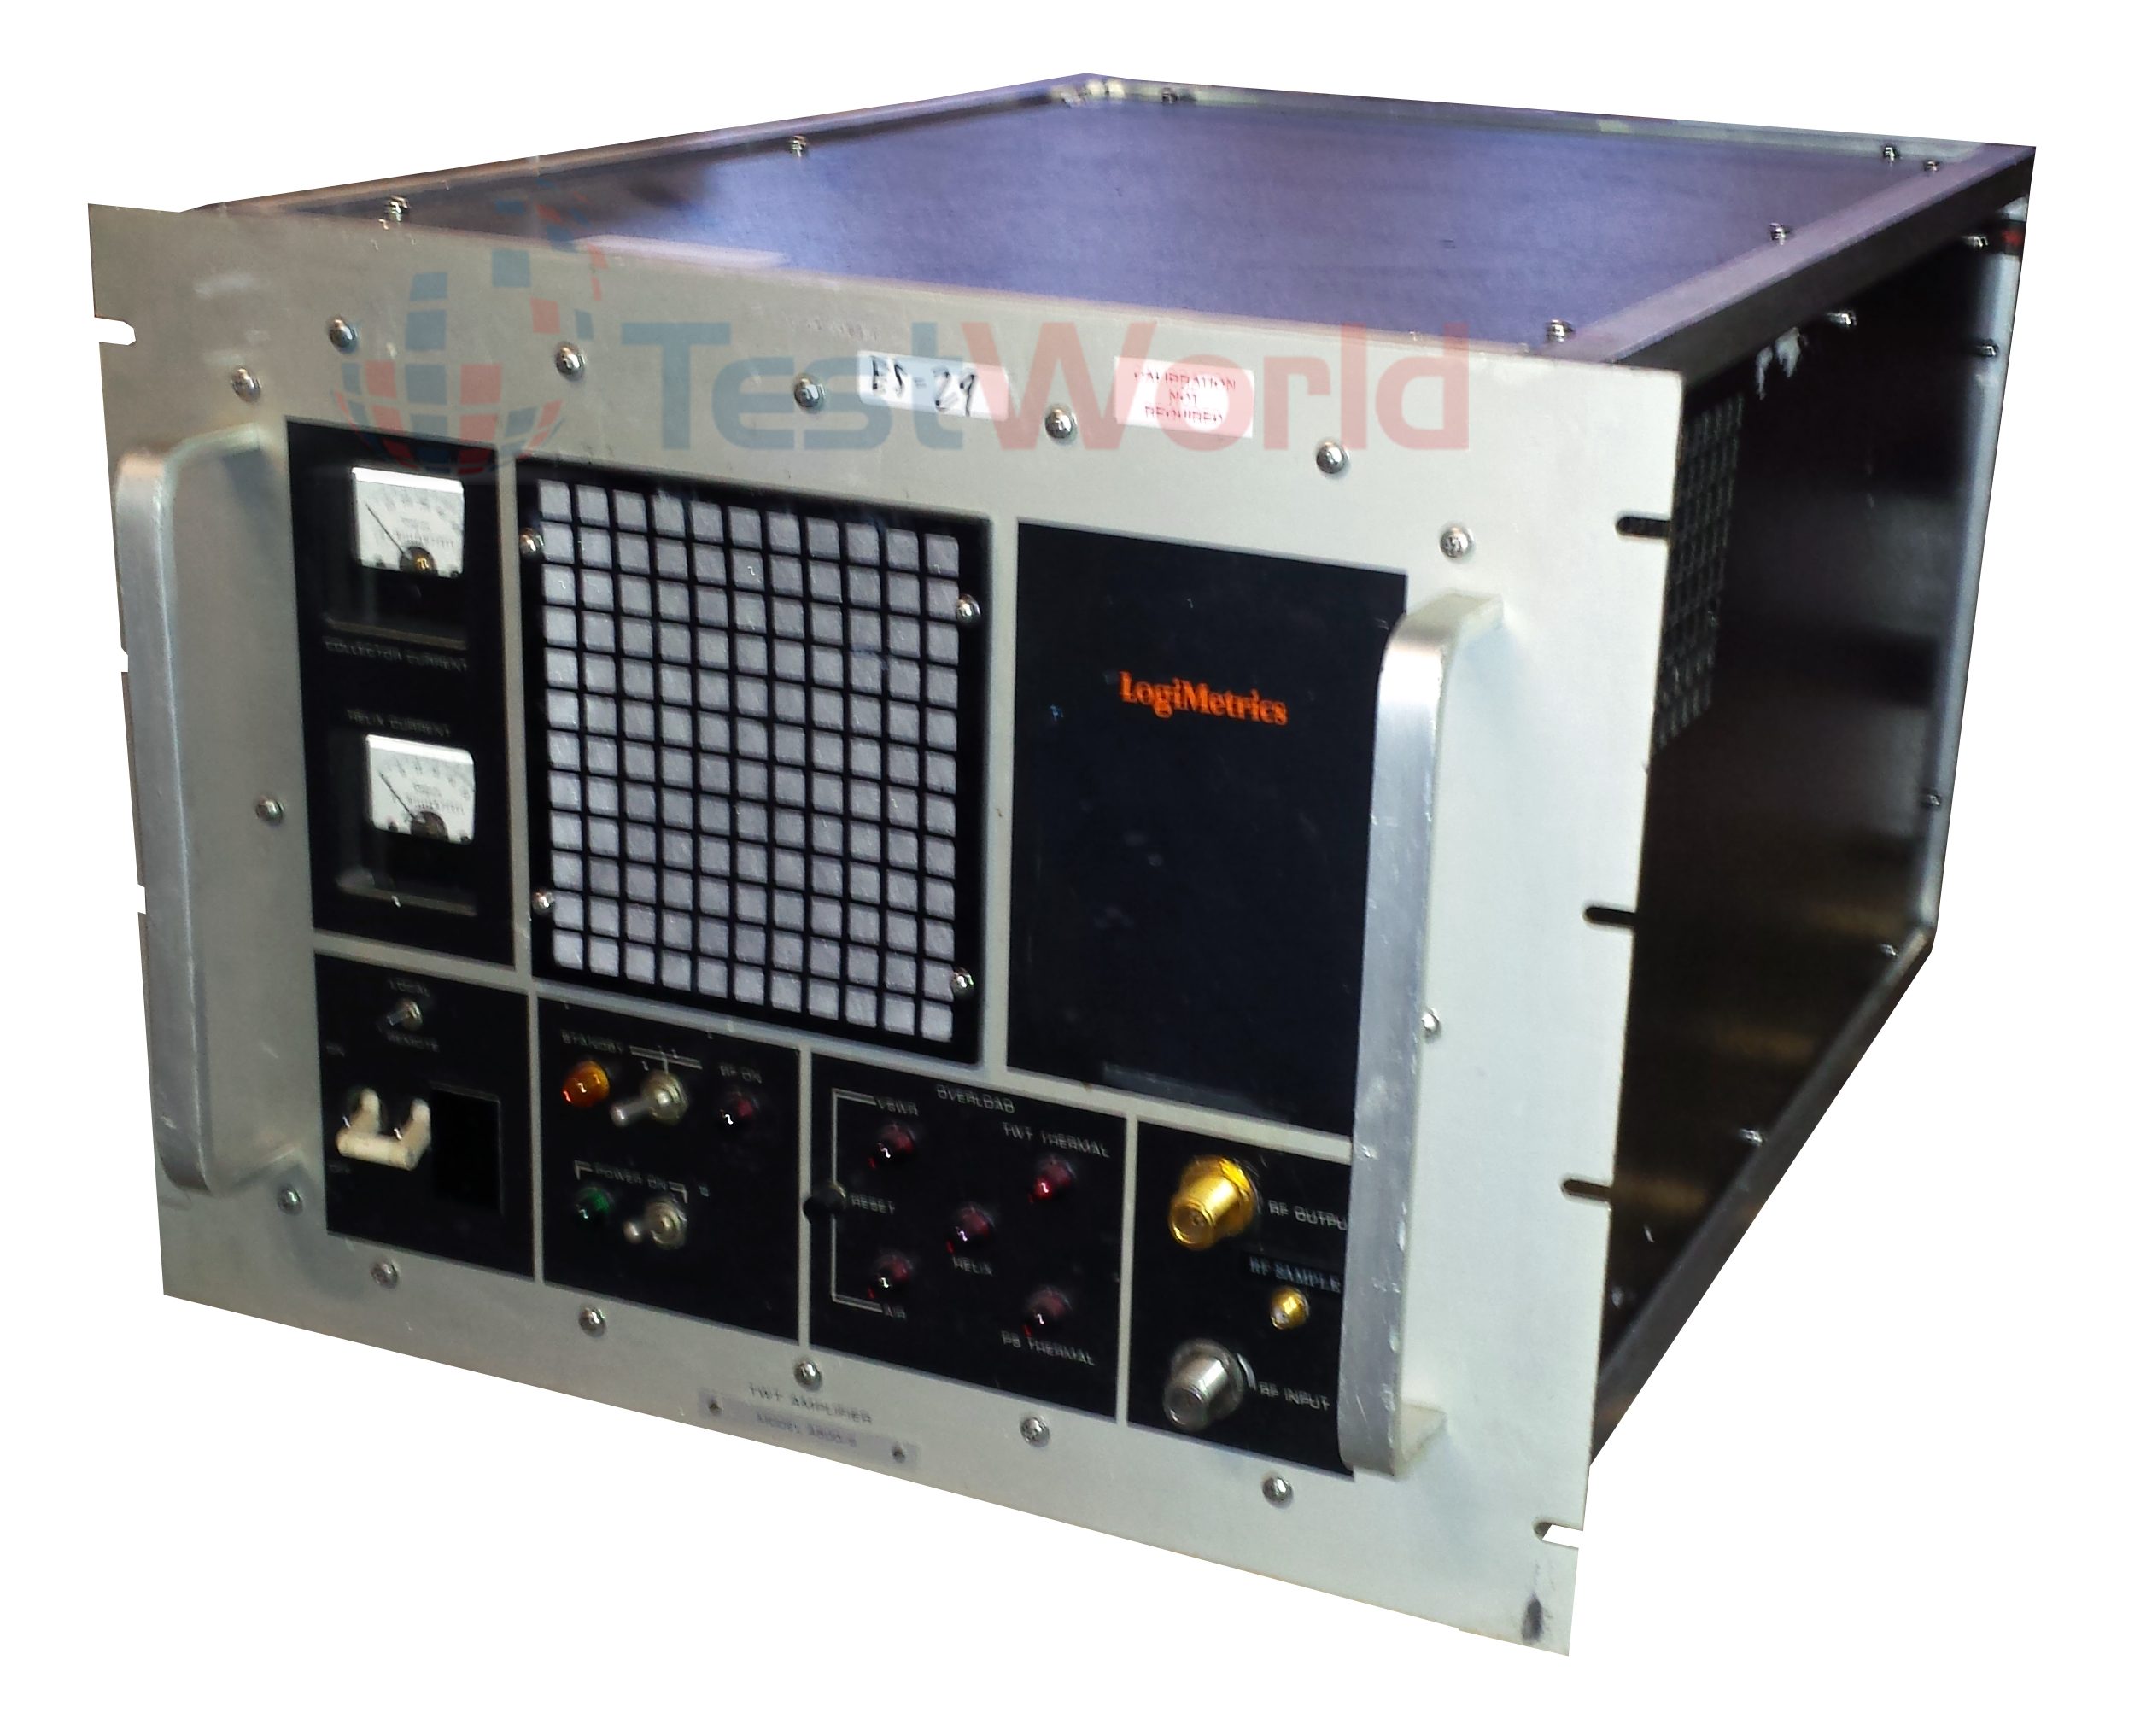 Logimetrics A710 Series High Power Pulsed RF Amplifiers, .7 - 18 GHz, 2% Duty Cycle